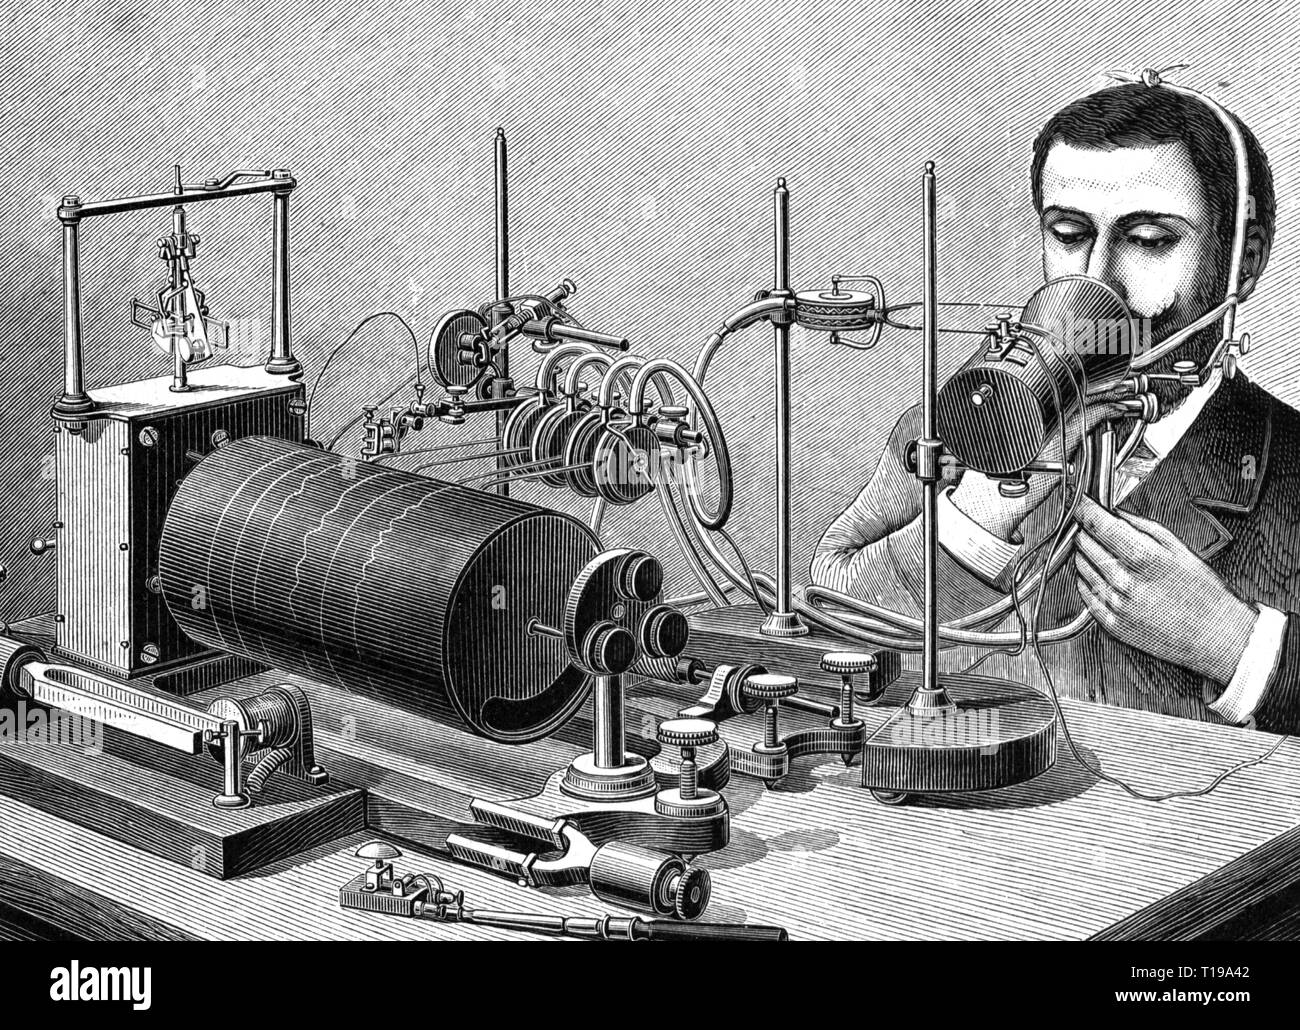 technics, machinery, appliance for the recording of language by Jean-Pierre Rousselot, wood engraving, circa 1900, Artist's Copyright has not to be cleared - Stock Image